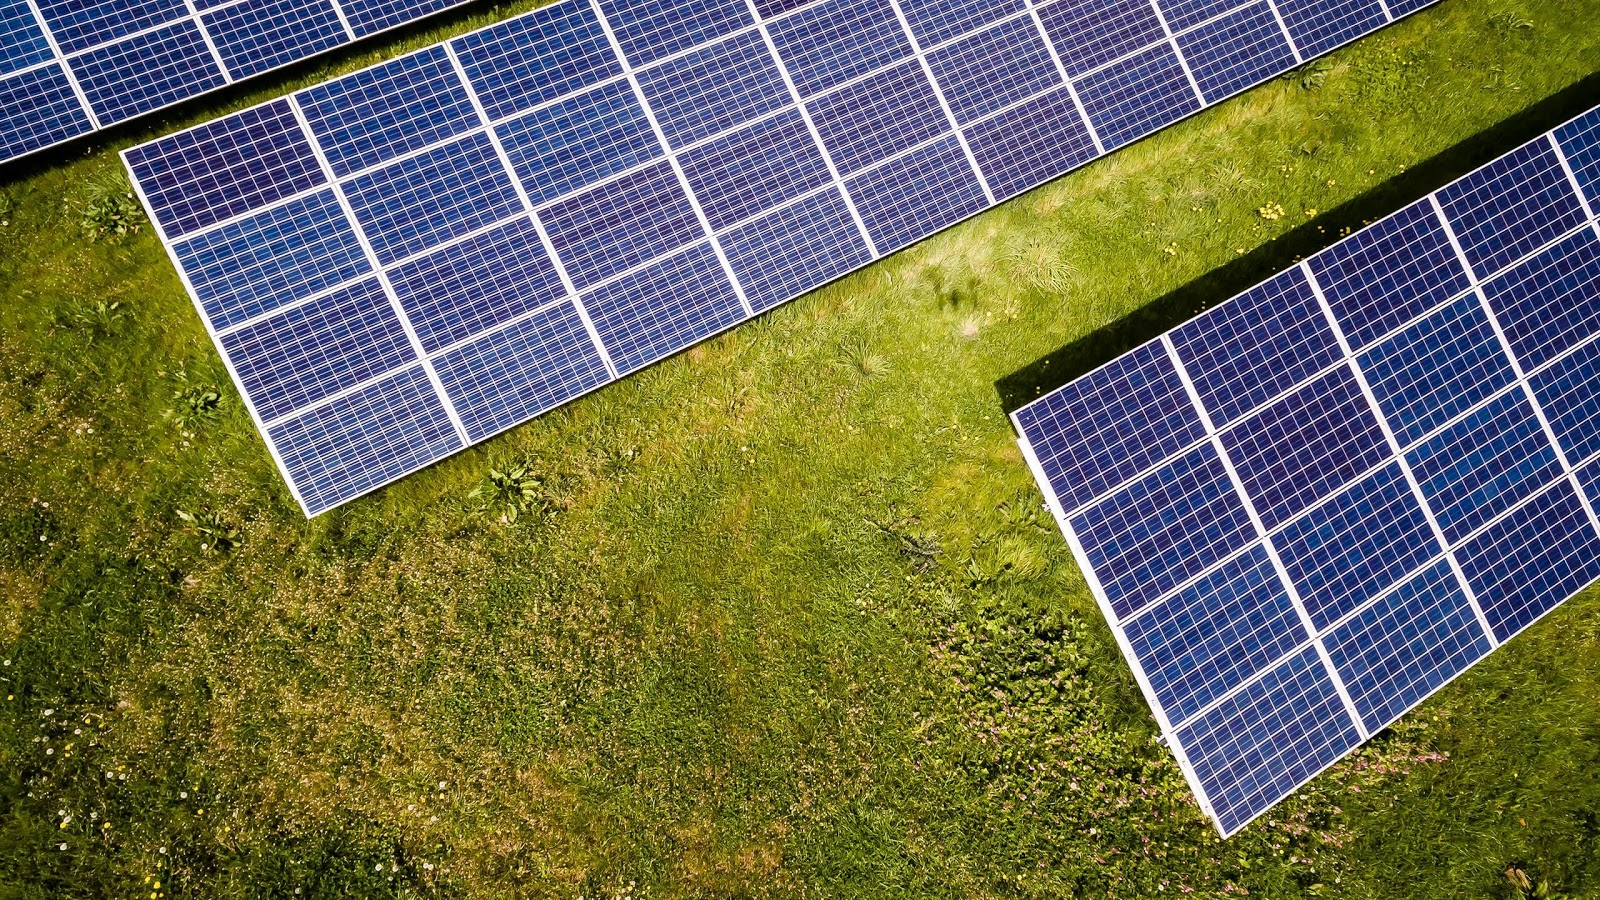 Pros And Cons Of Solar Energy Is The Sun That Good Heat Source Small Business Sense